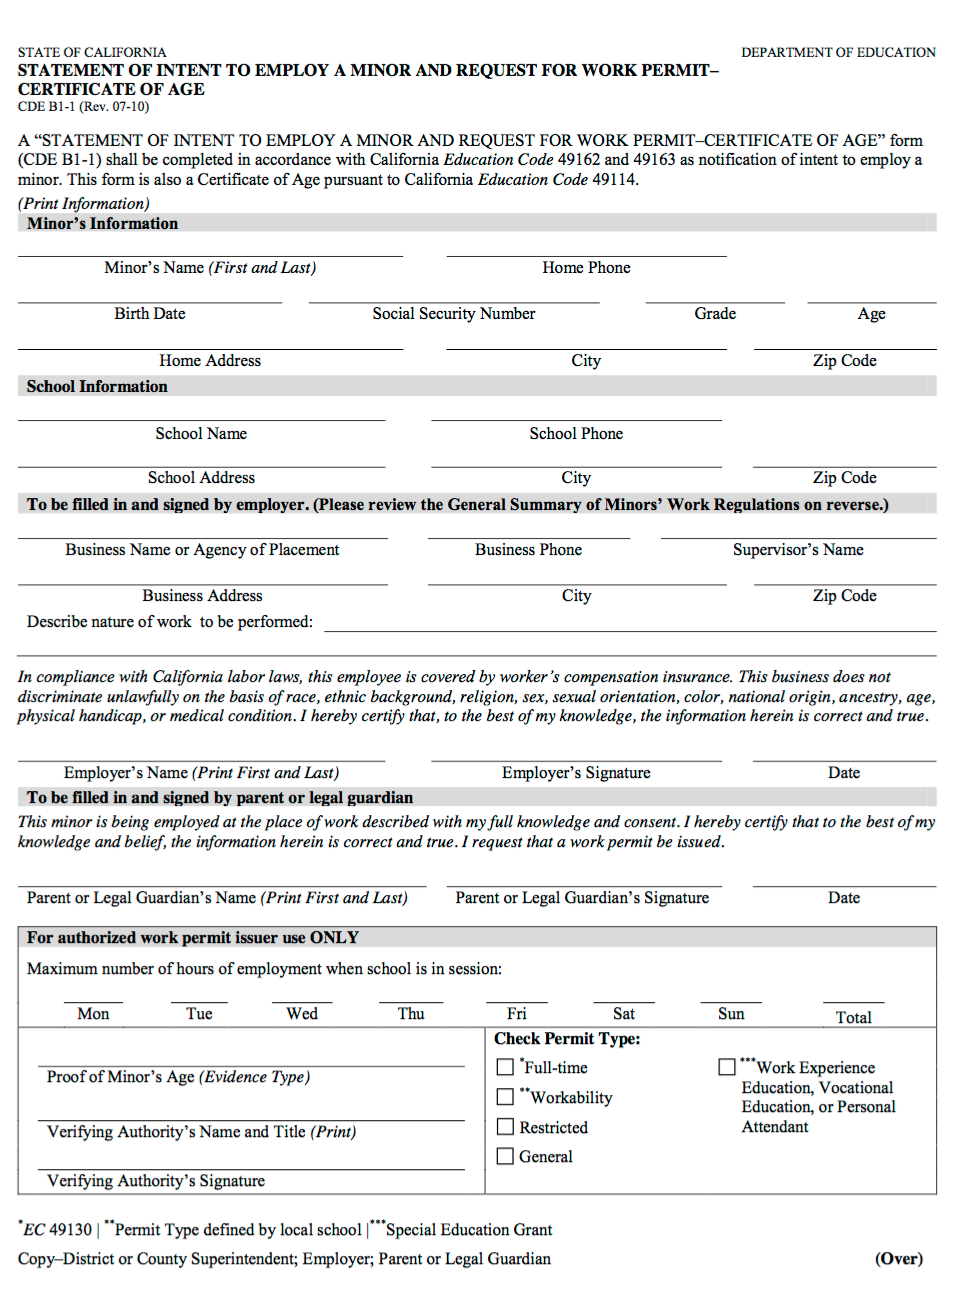 Work permit form, California Department of Education